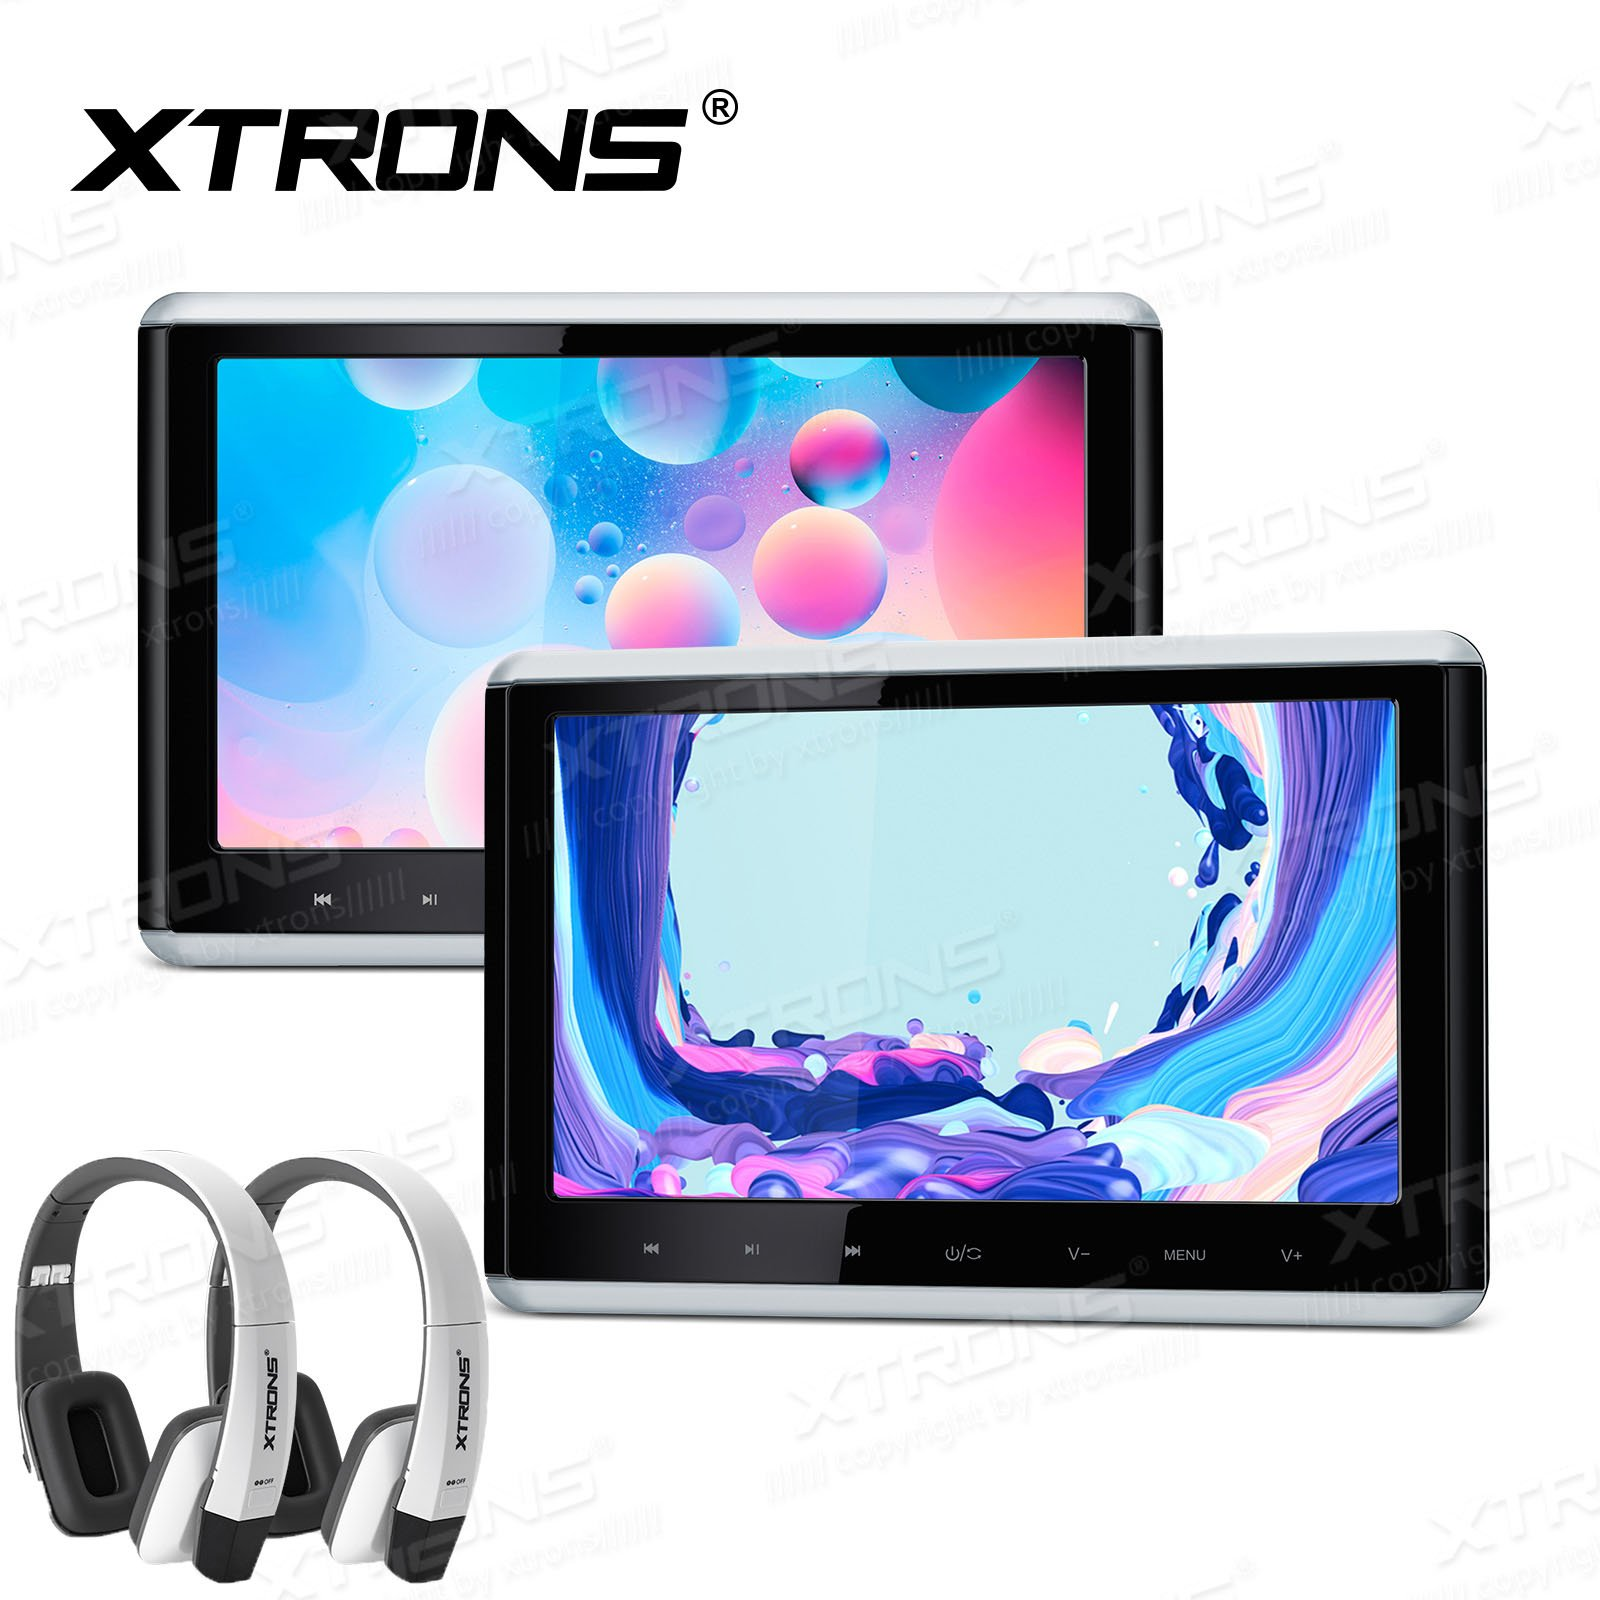 XTRONS 2 x Touch Panel Pair 10.2'' HD Digital TFT Screen 1080P Video Car Active Headrest DVD Player New Version White IR Headphones